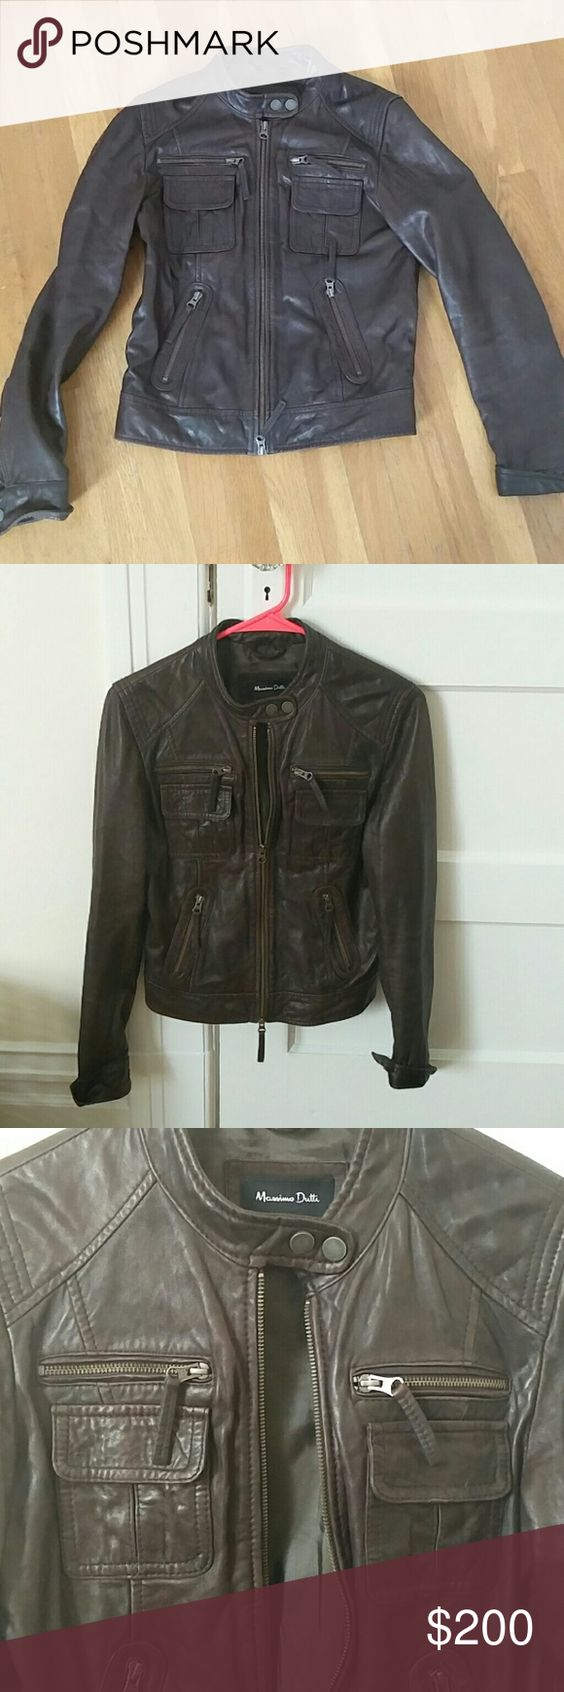 Leather jacket europe - Brown Leather Jacket 100 Sheep Skin Beautiful Leather Jacket 100 Sheep Skin Purchased In Europe 2 Years Old But Rarely Worn And In Fantastic Condition